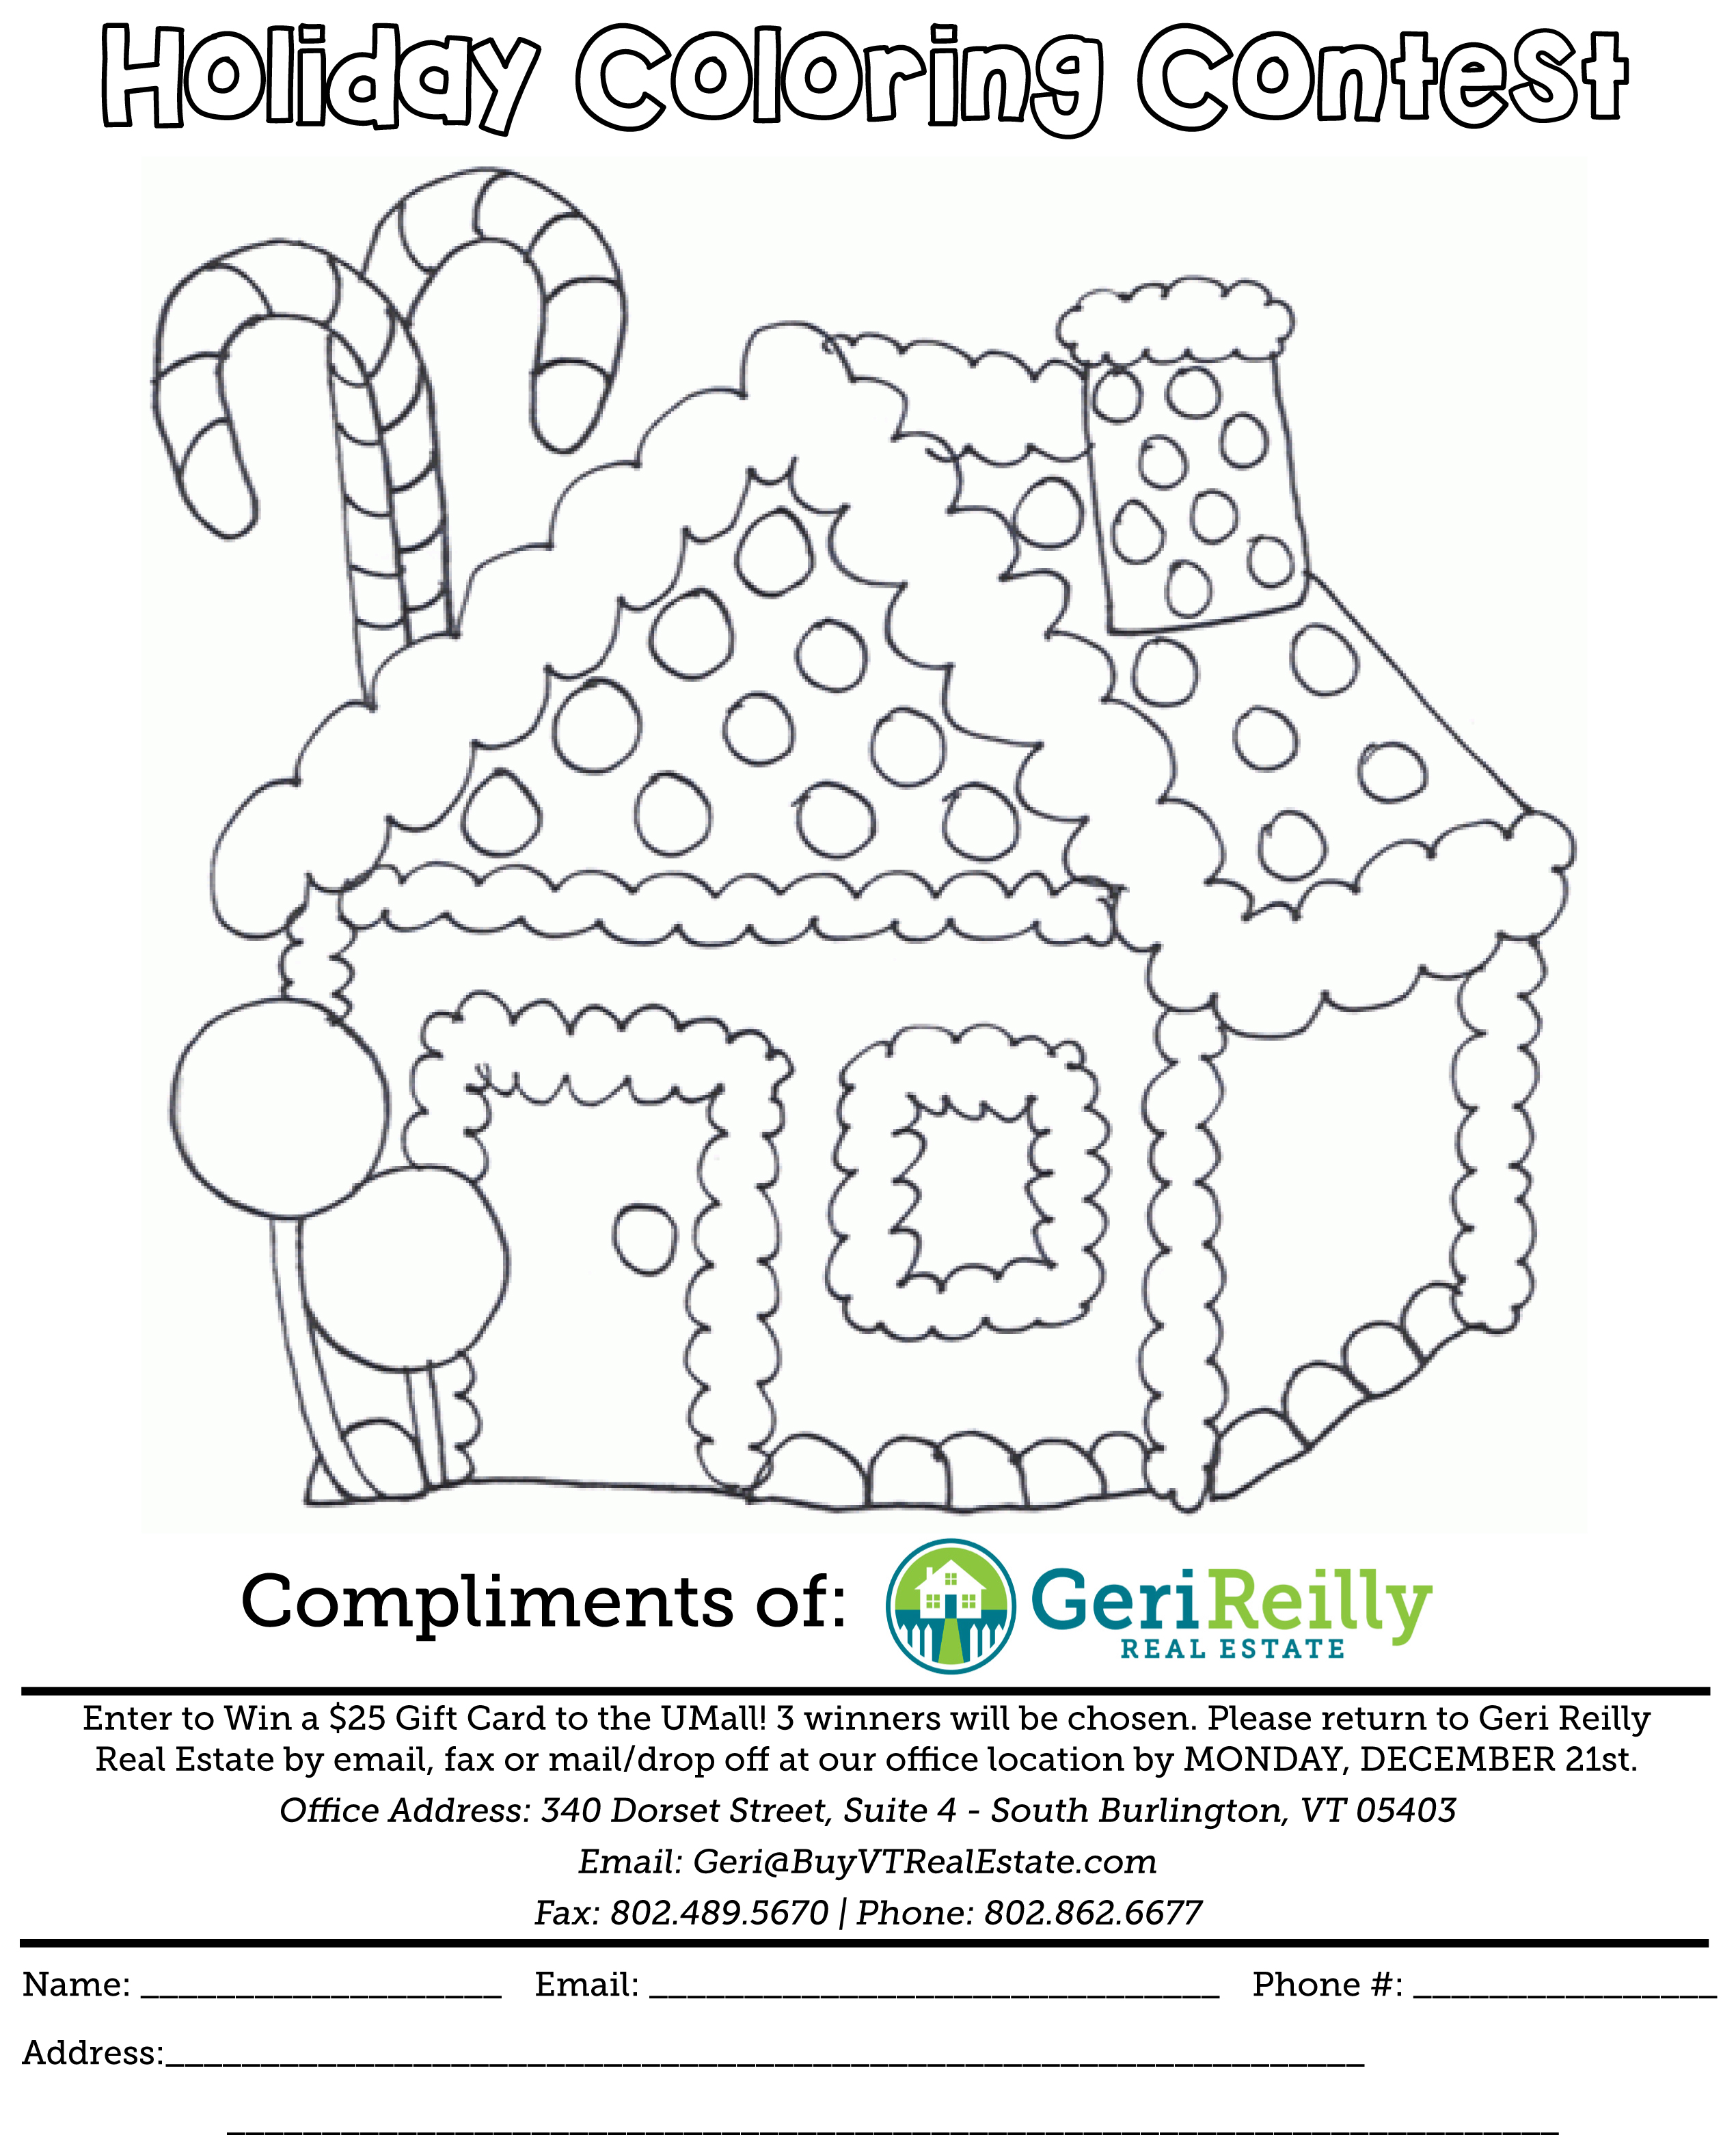 Geri Reilly Real Estate - Holiday Coloring Contest